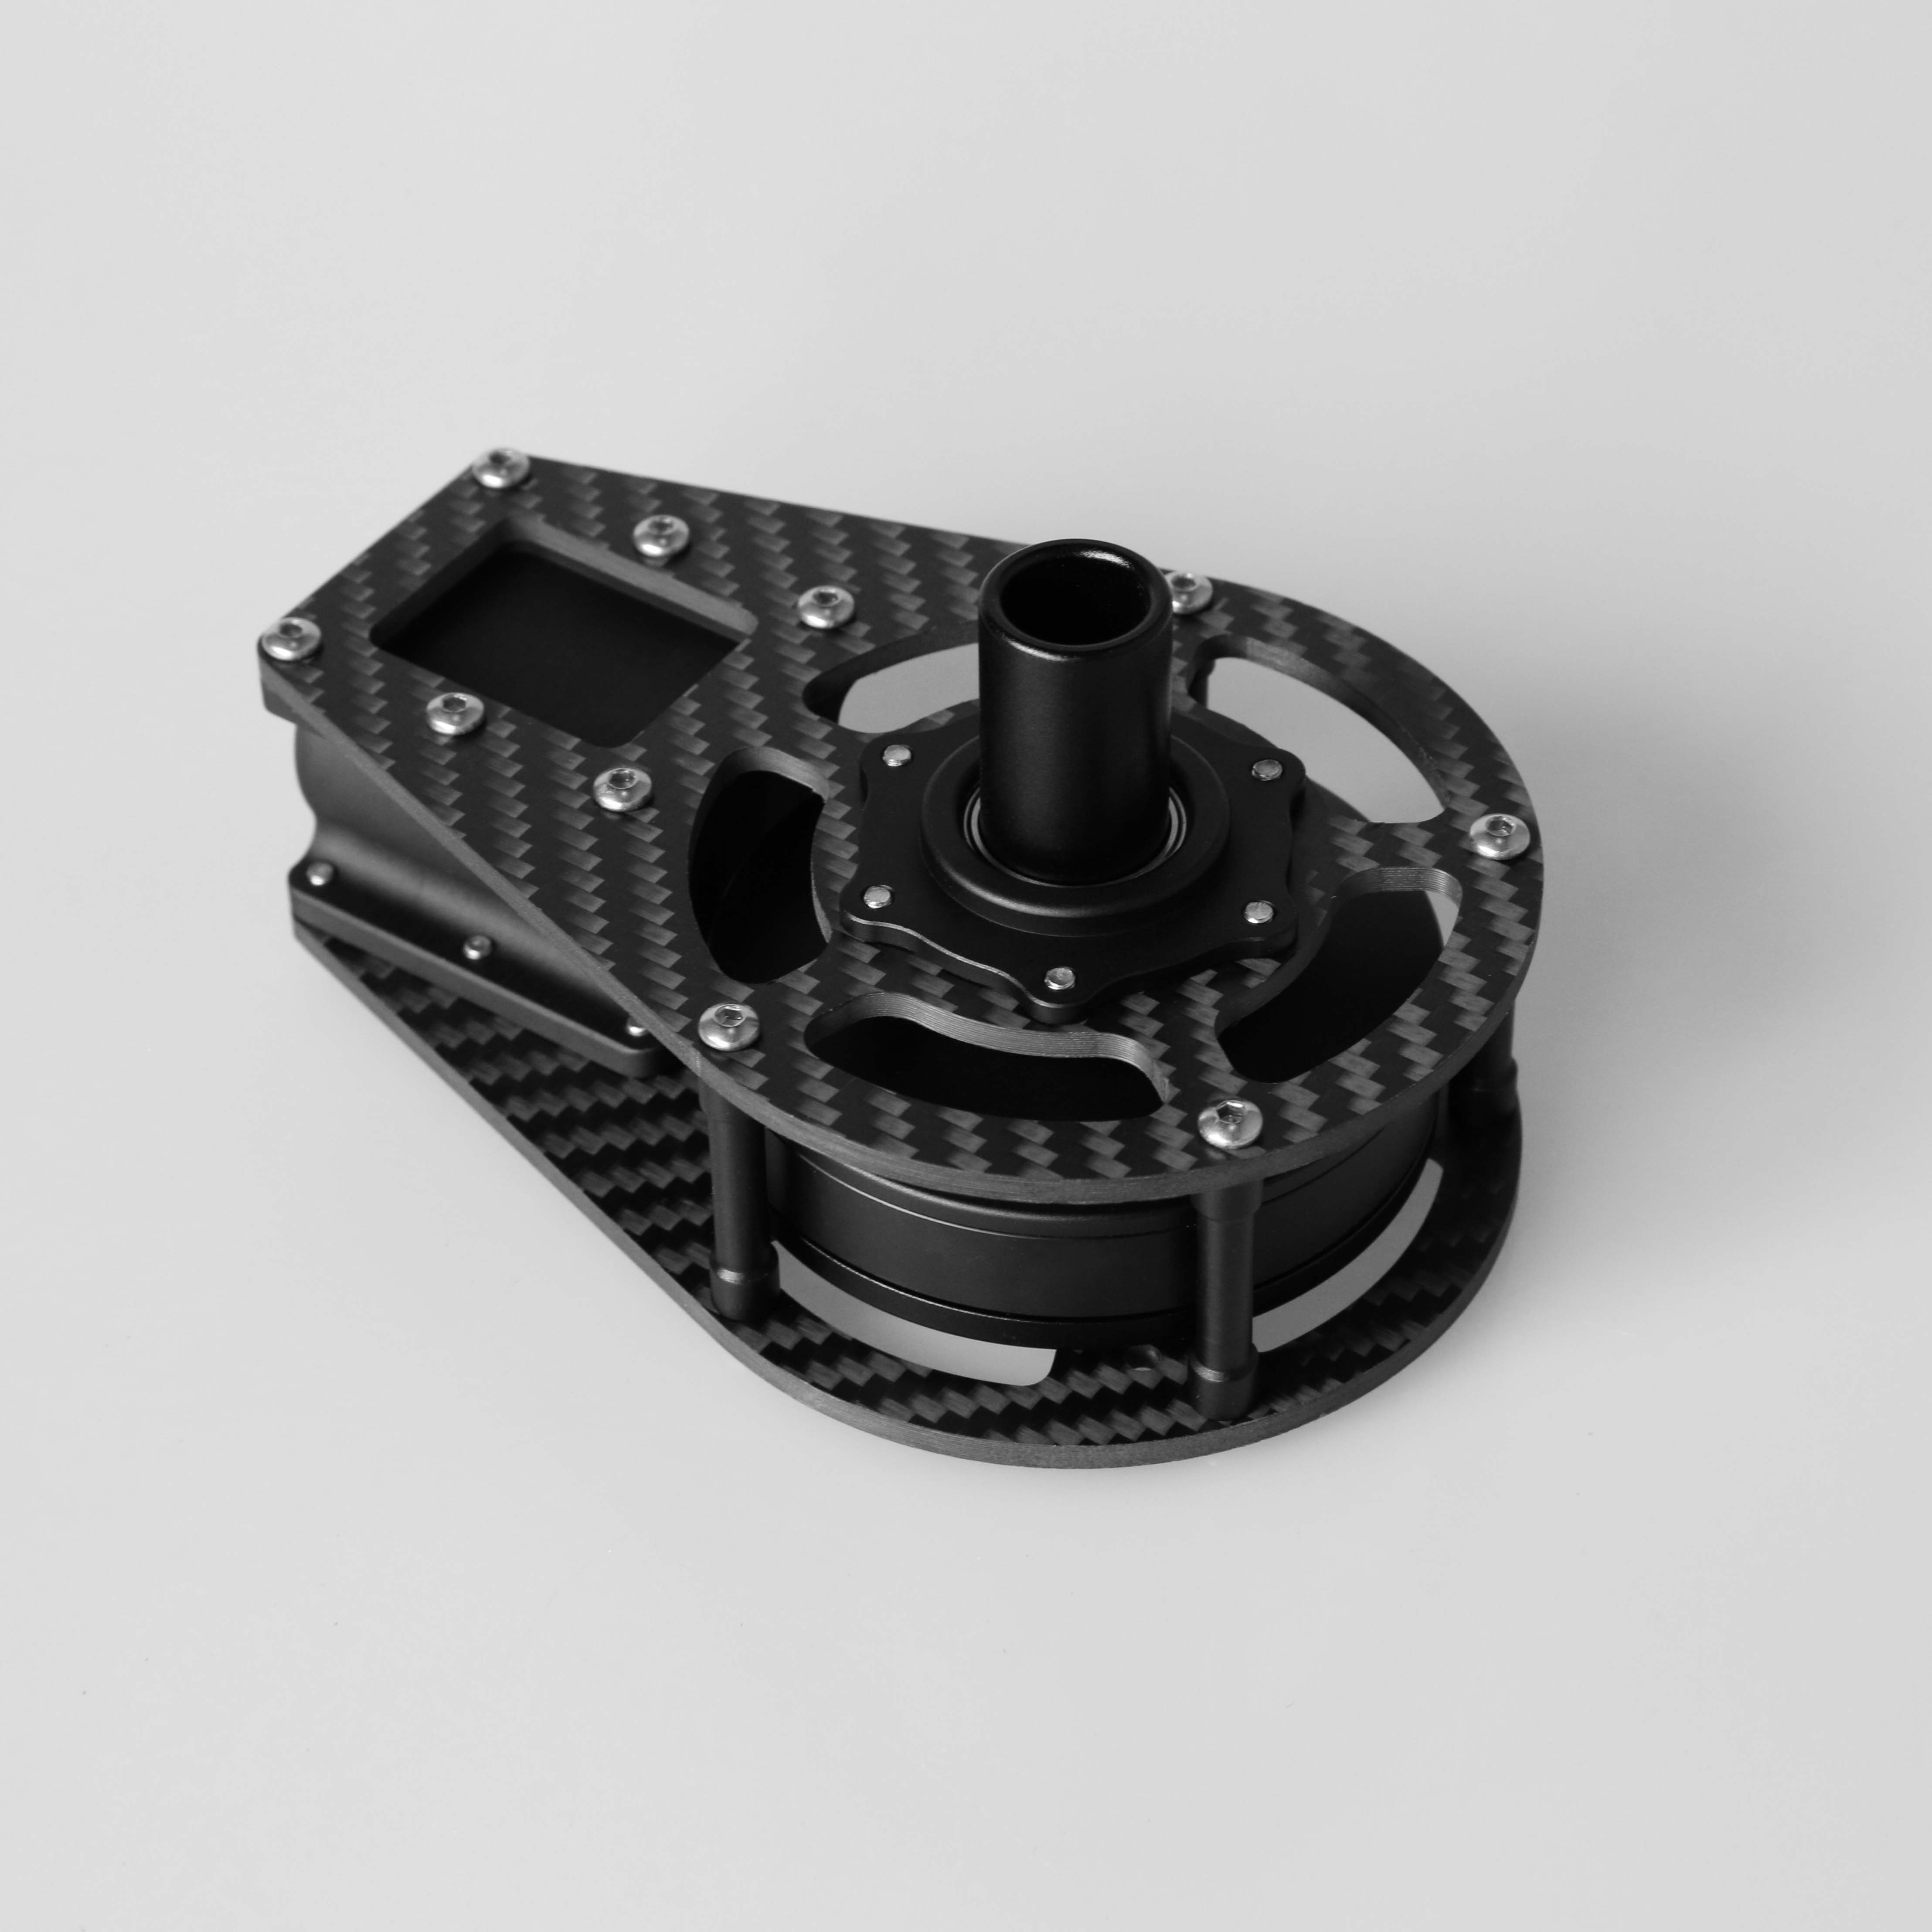 Pitch X axis motor cage with 6208 motor for BG004 pro